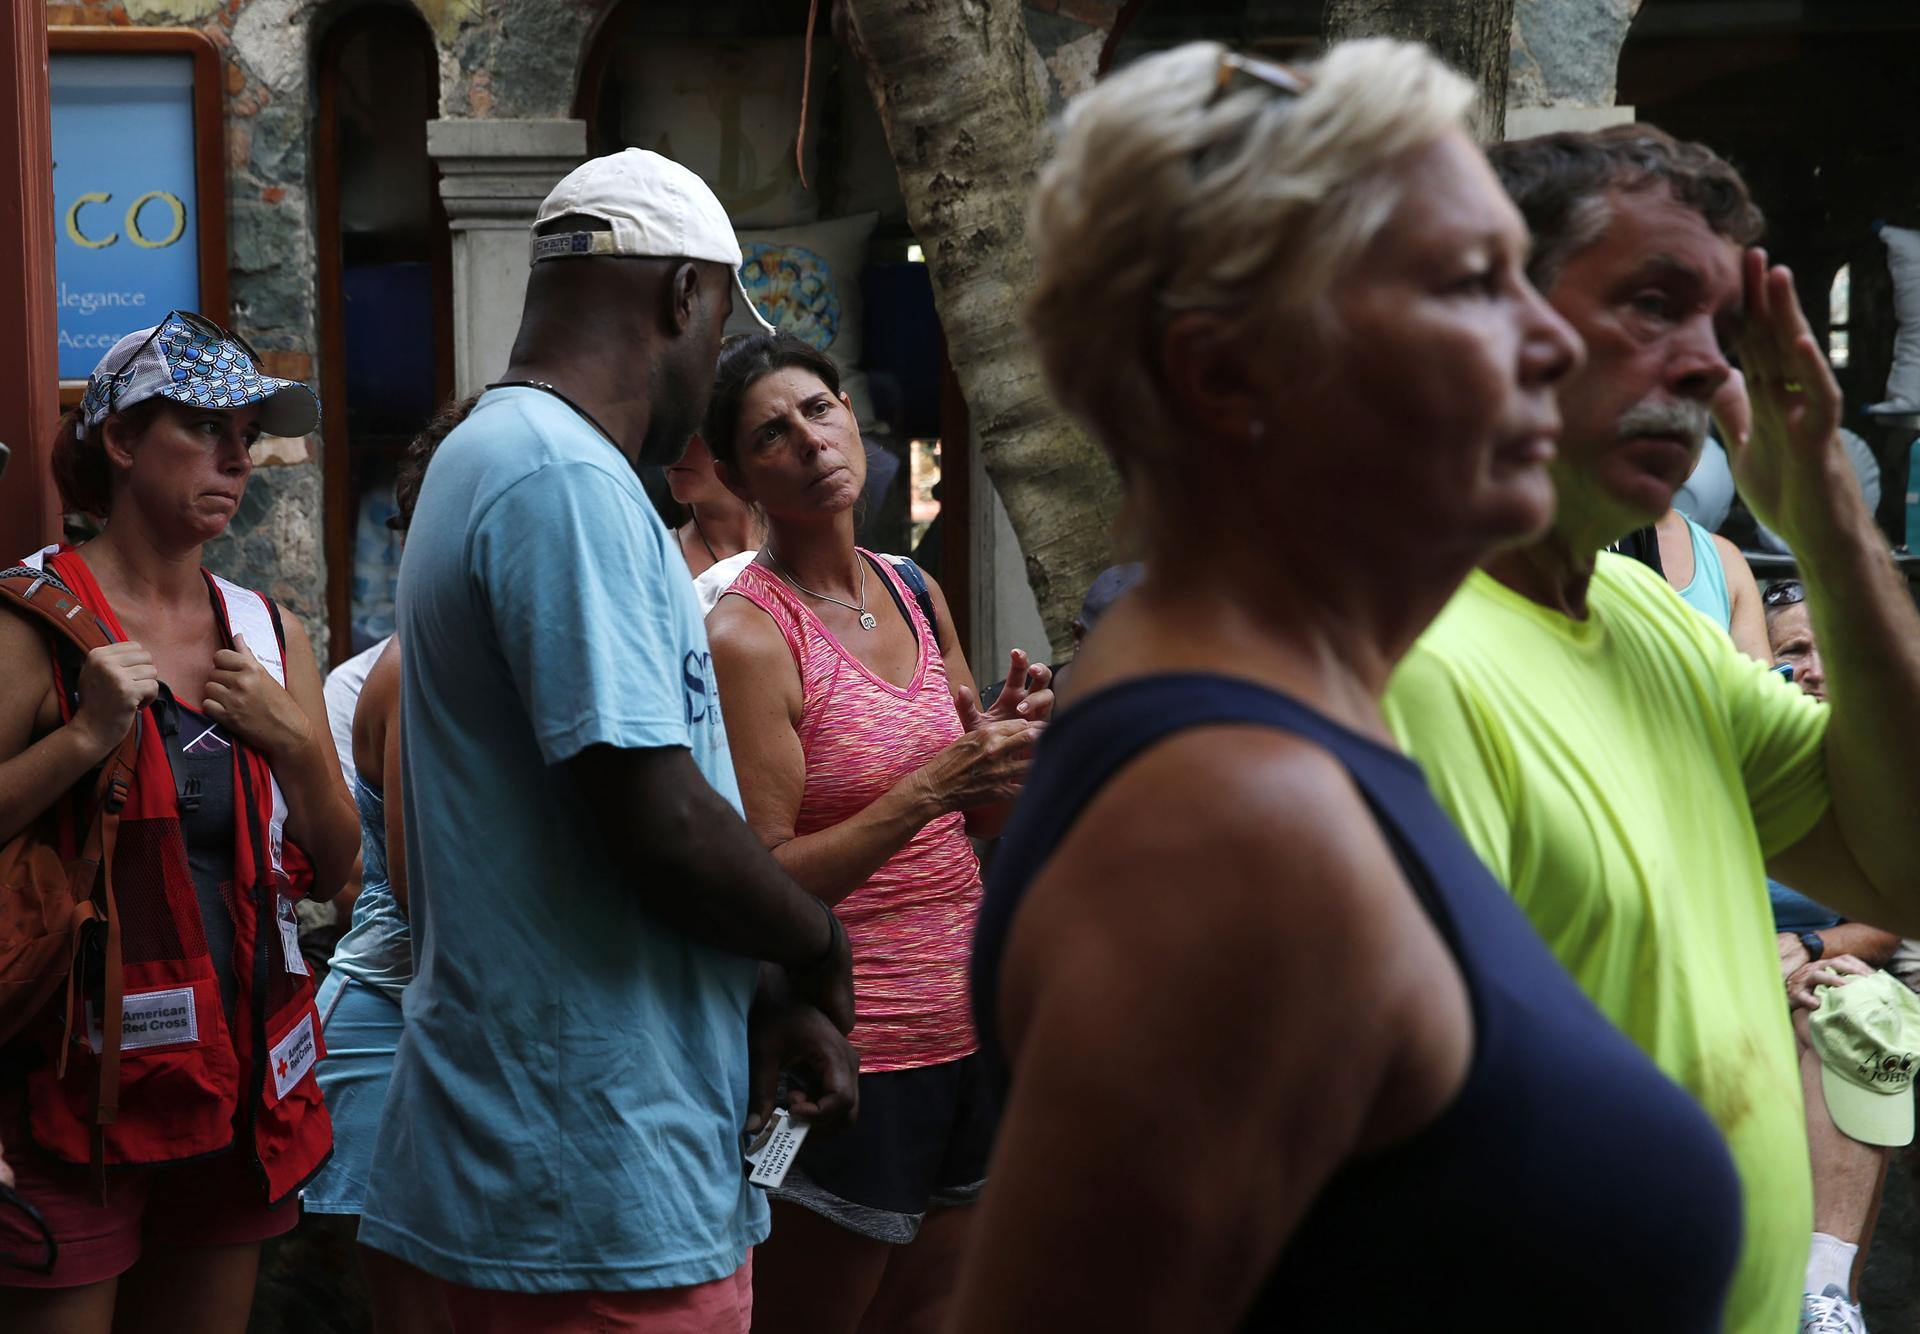 People listen to information about evacuations and updates about the current situation on the island during